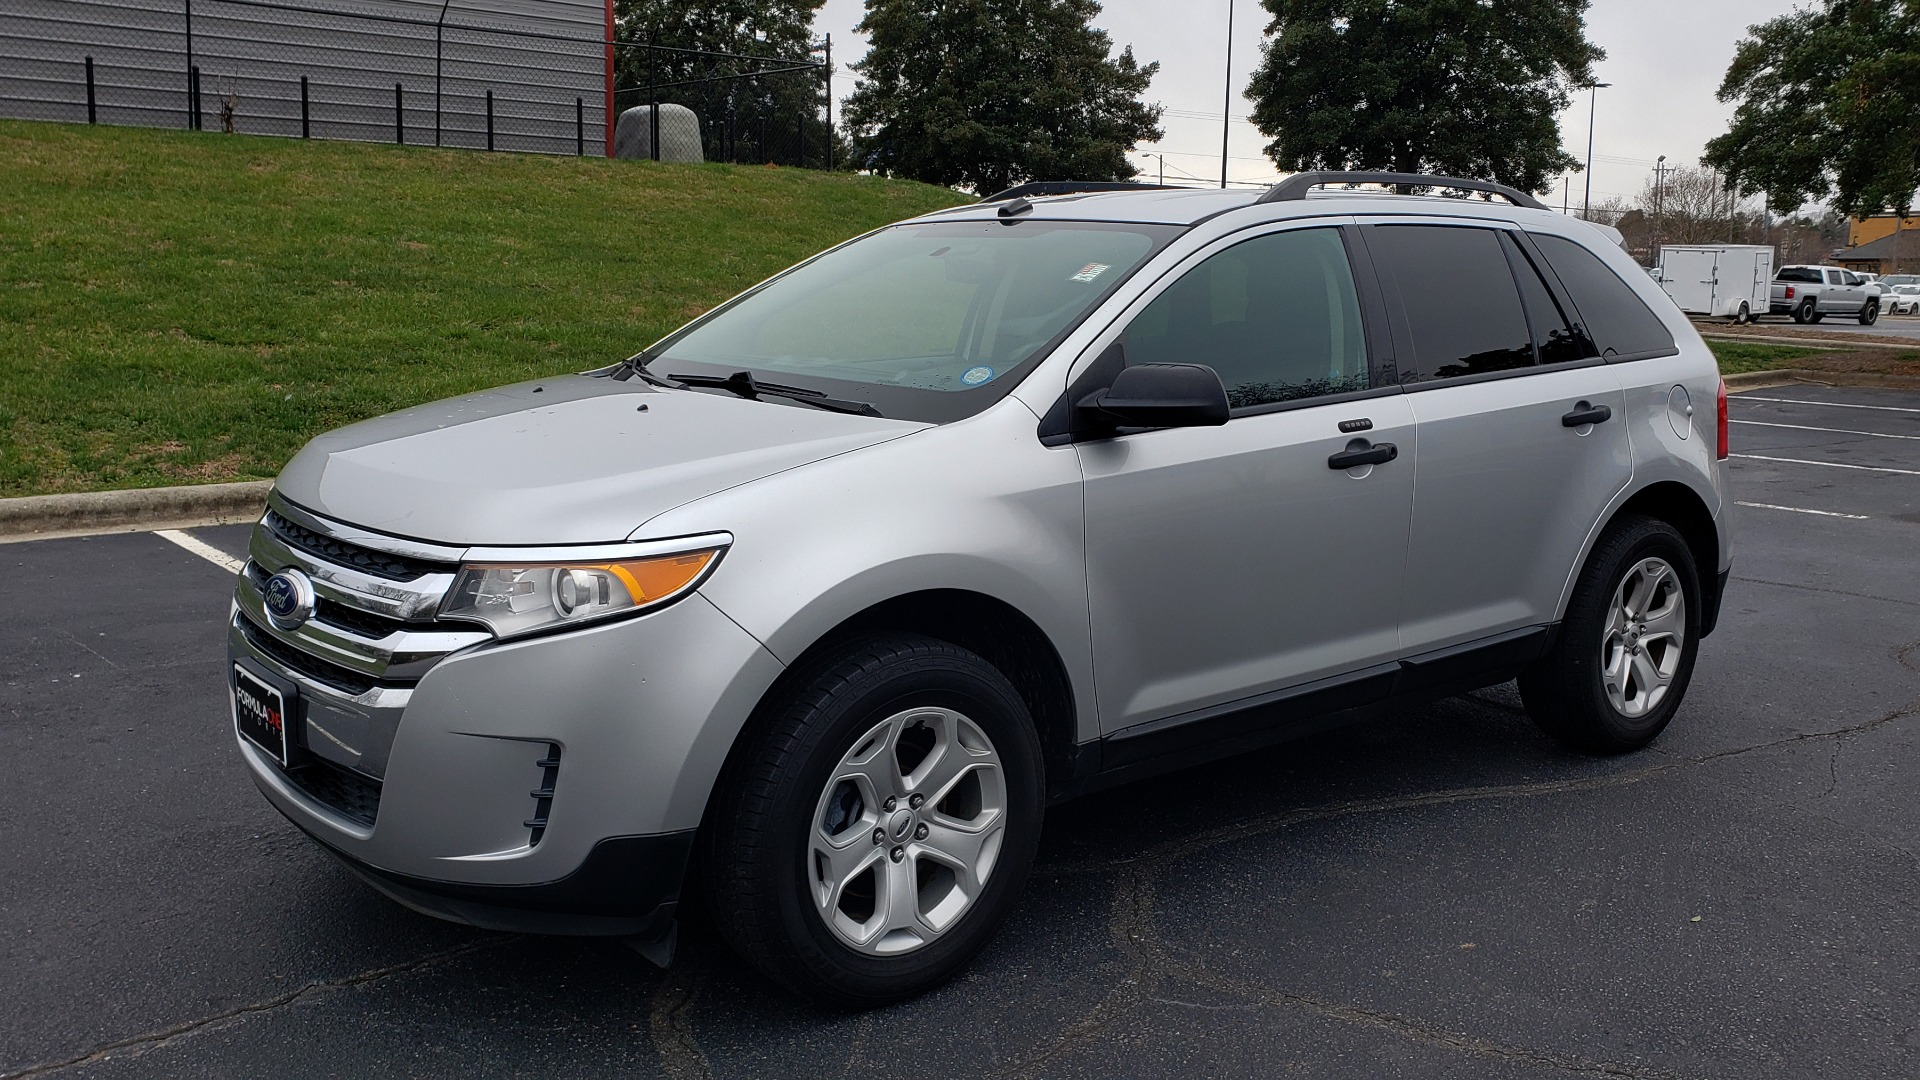 Used 2013 Ford EDGE SE / AWD / 18 IN WHEELS / SYNC / 3.5L V6 / AUTO for sale Sold at Formula Imports in Charlotte NC 28227 1